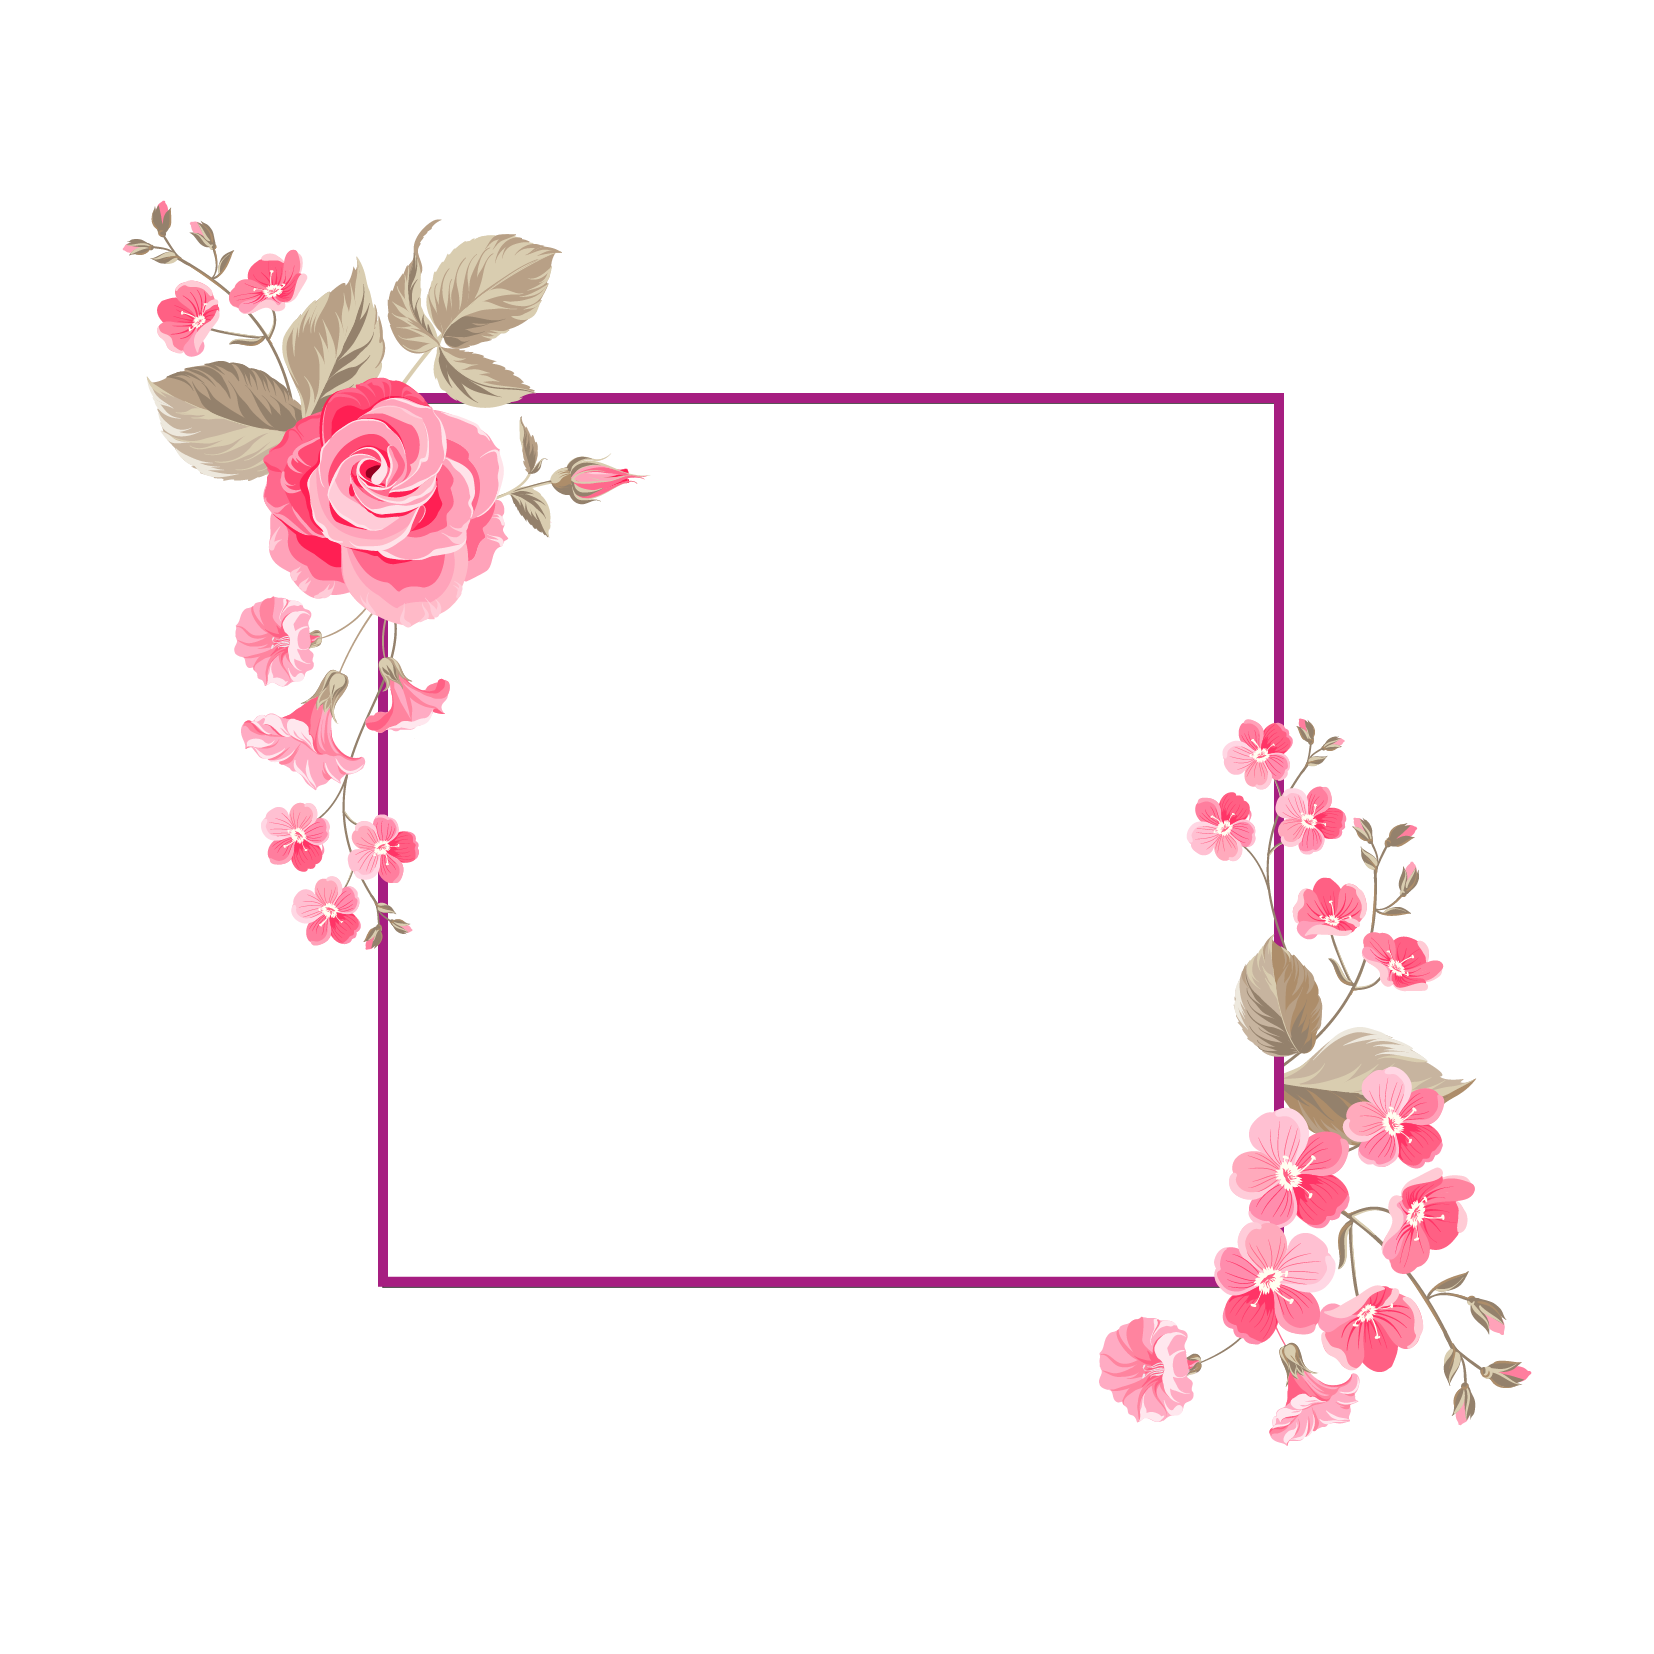 And Flower Portable Floral Vector Design Graphics PNG Image